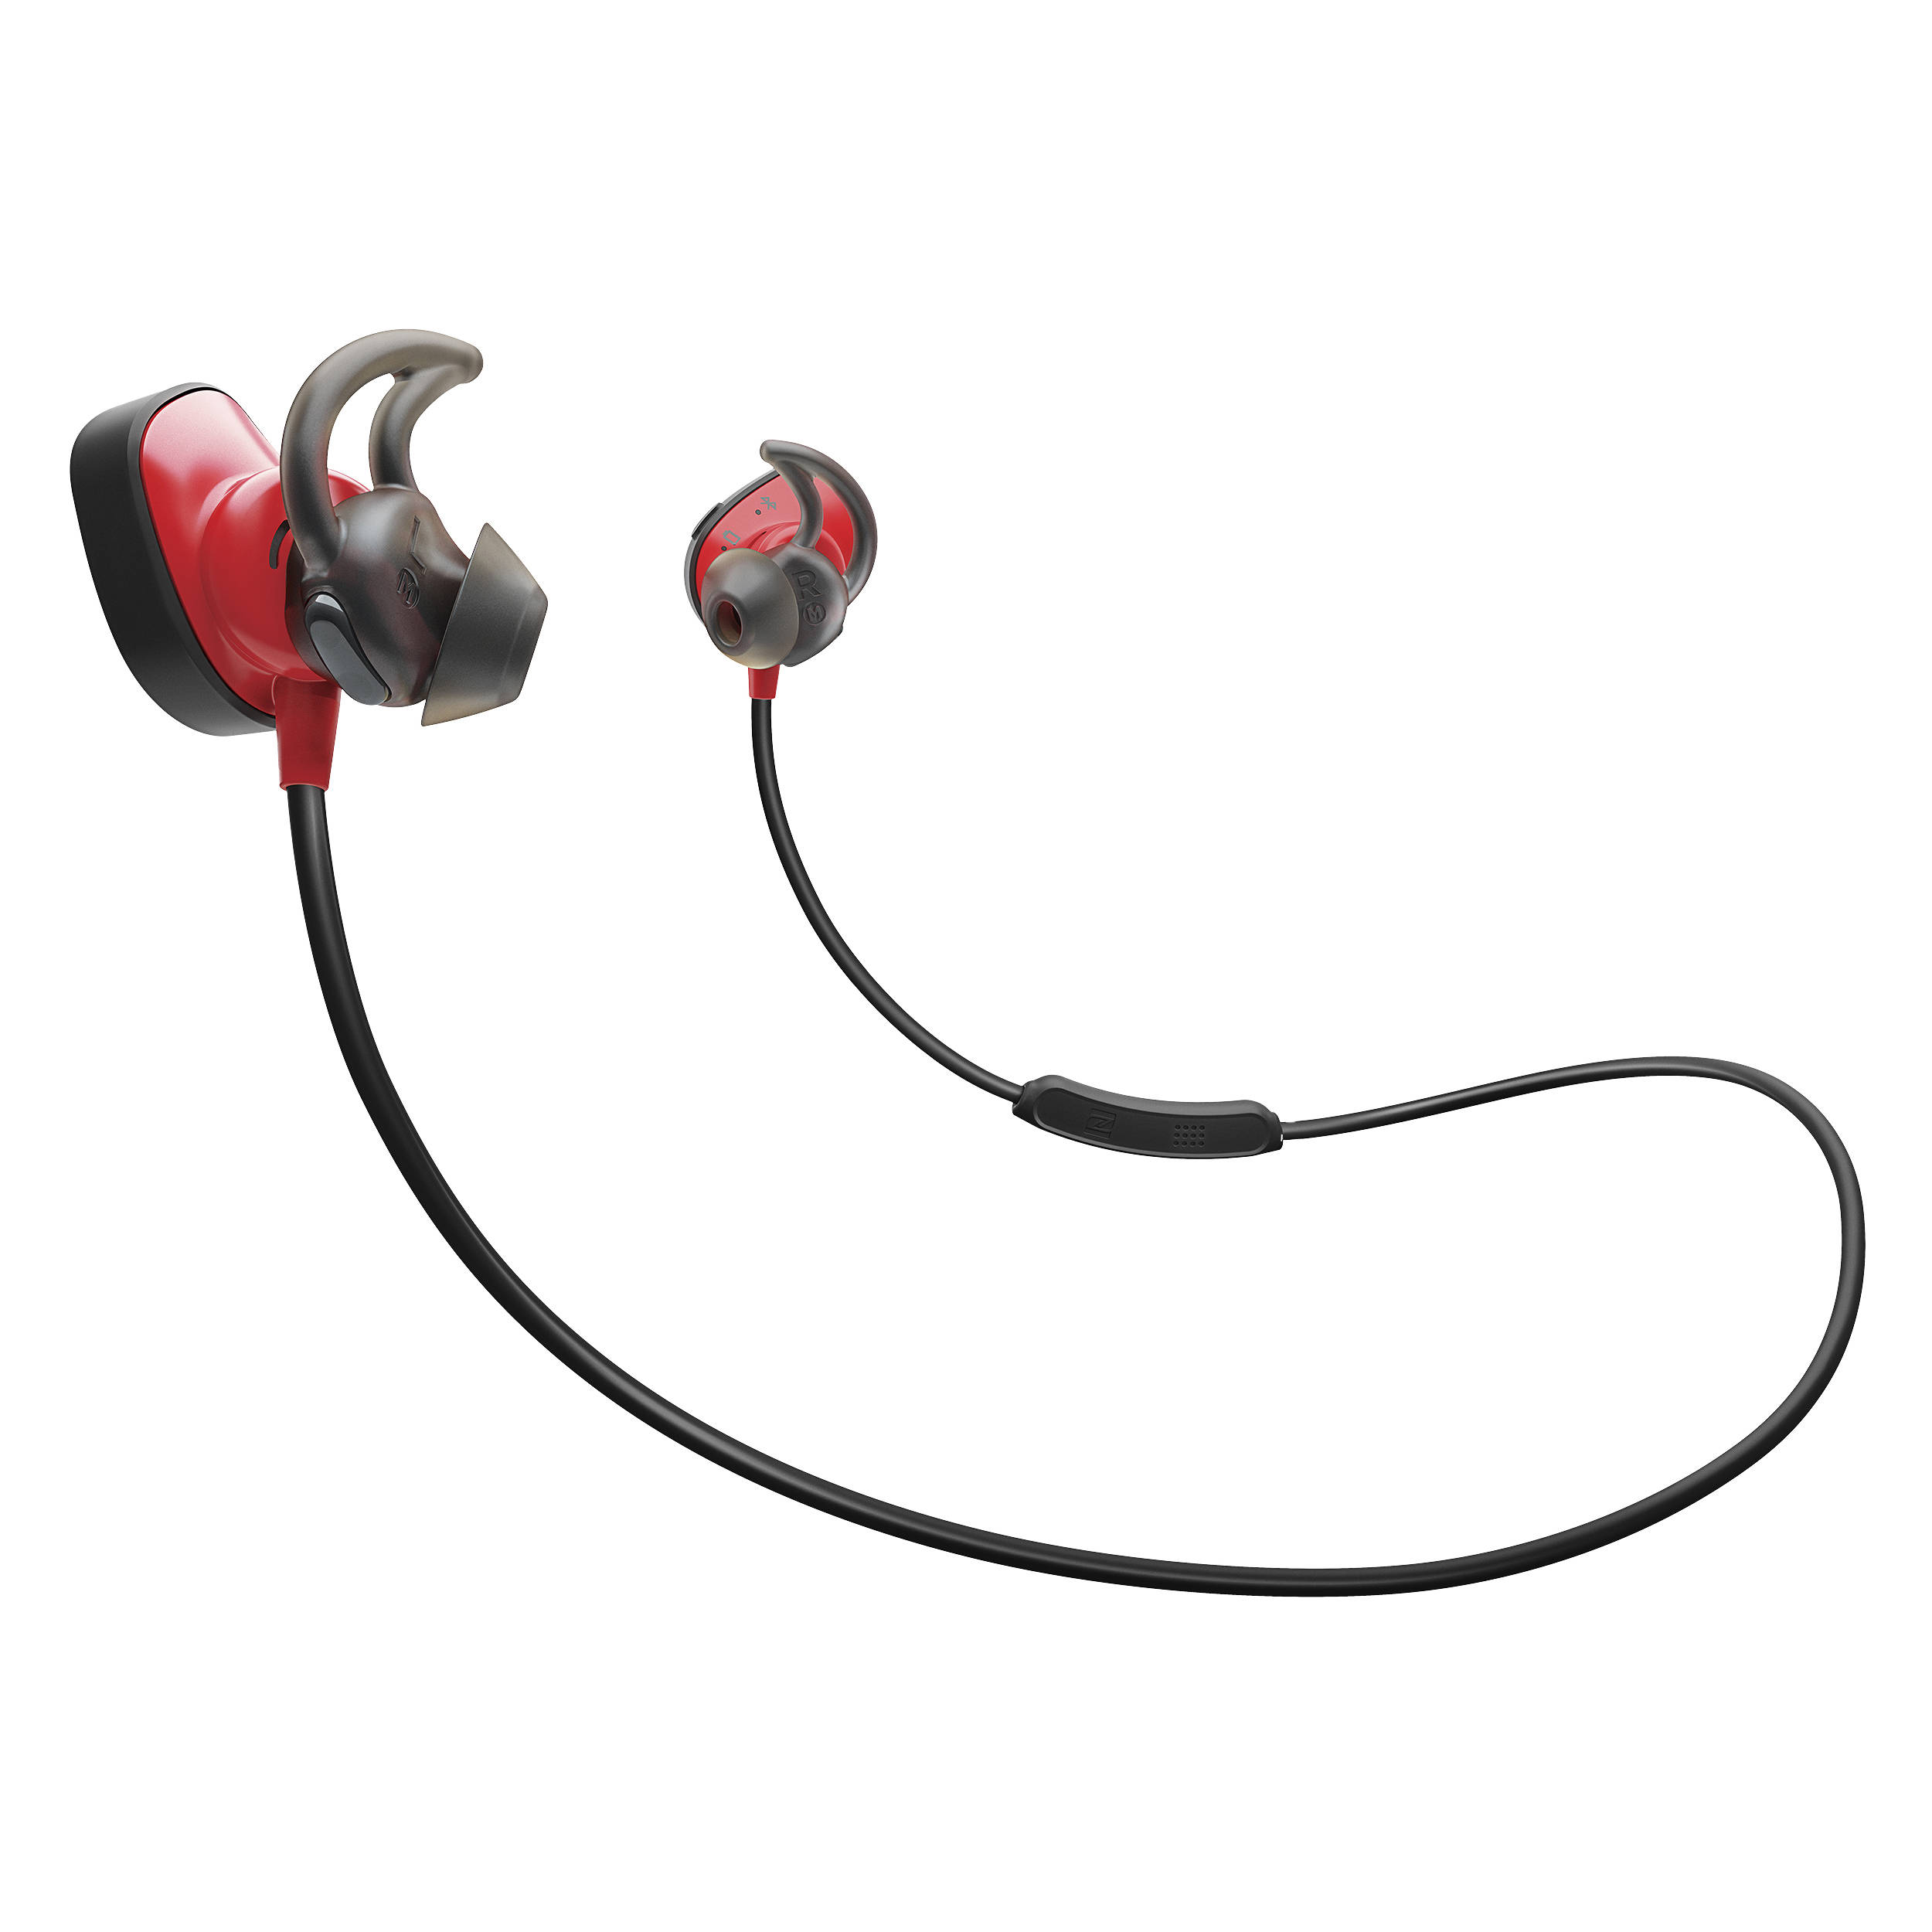 bose 774373 0010. bose soundsport pulse wireless in-ear headphones (red) 774373 0010